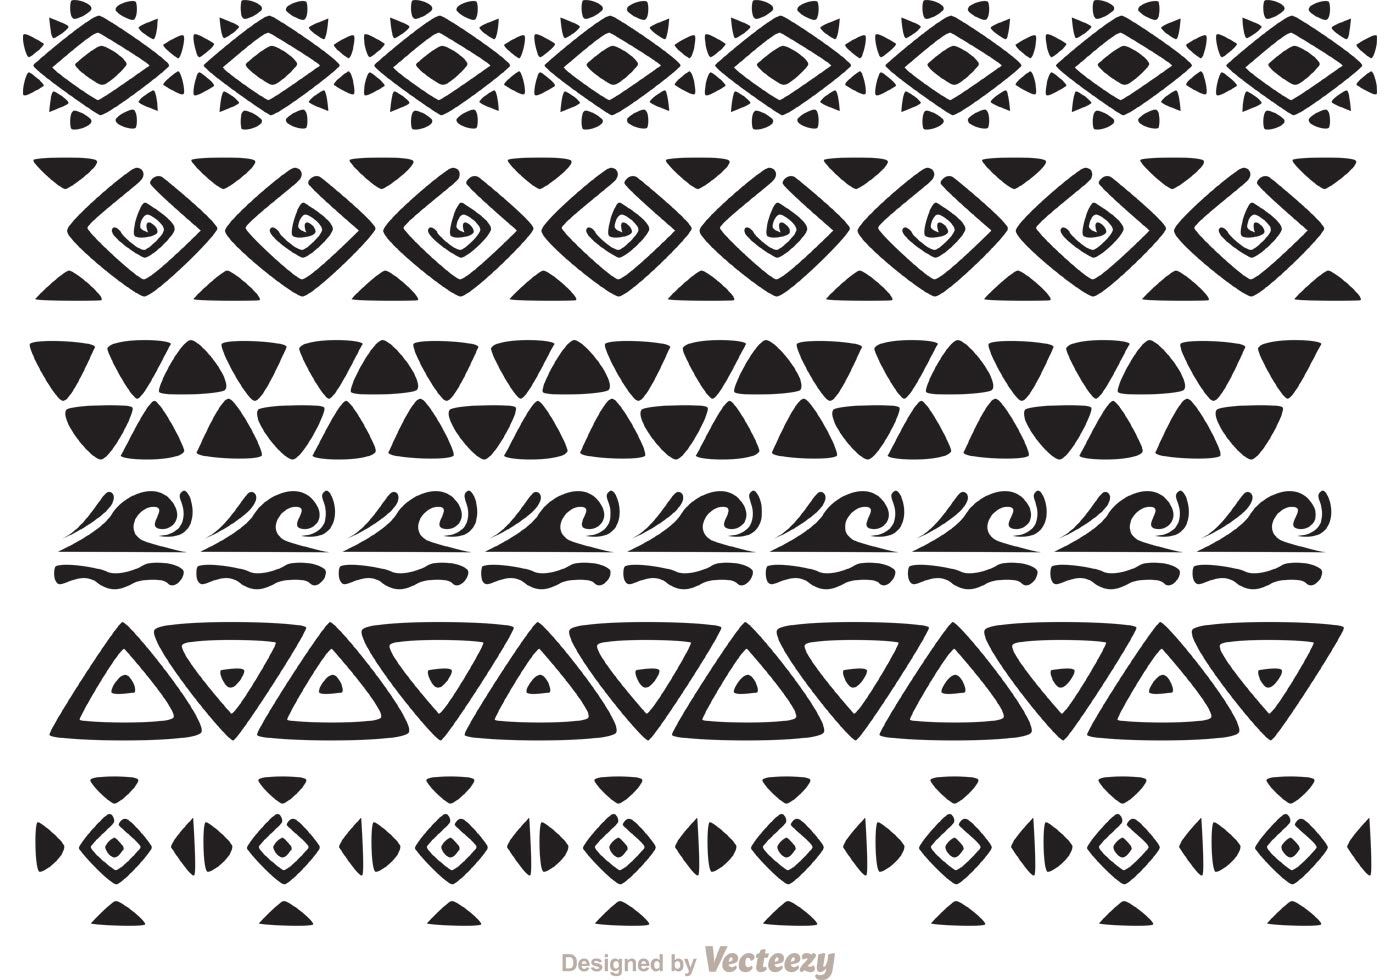 hawaiian tribal pattern vectors pack 2 download free vector art stock graphics images. Black Bedroom Furniture Sets. Home Design Ideas